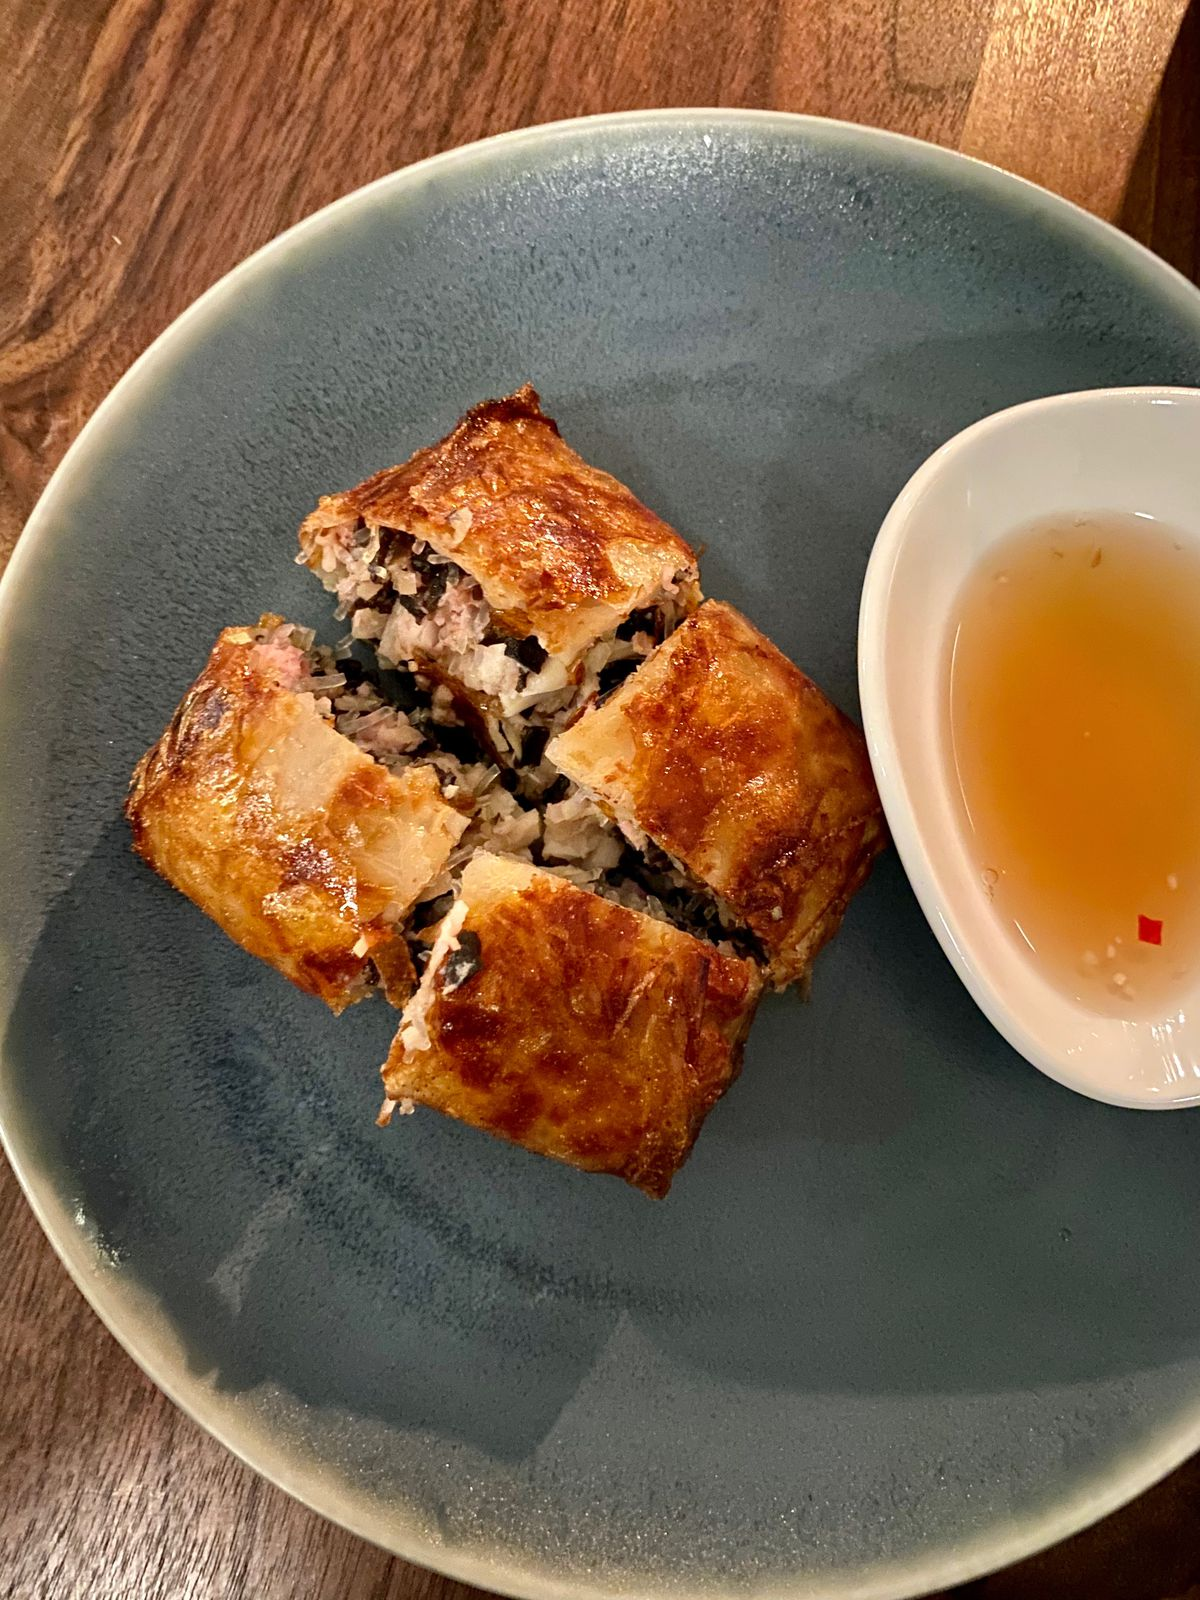 A square shaped deep fried dish that's cut into four pieces and placed on a ceramic plate with a red colored sauce next to it.